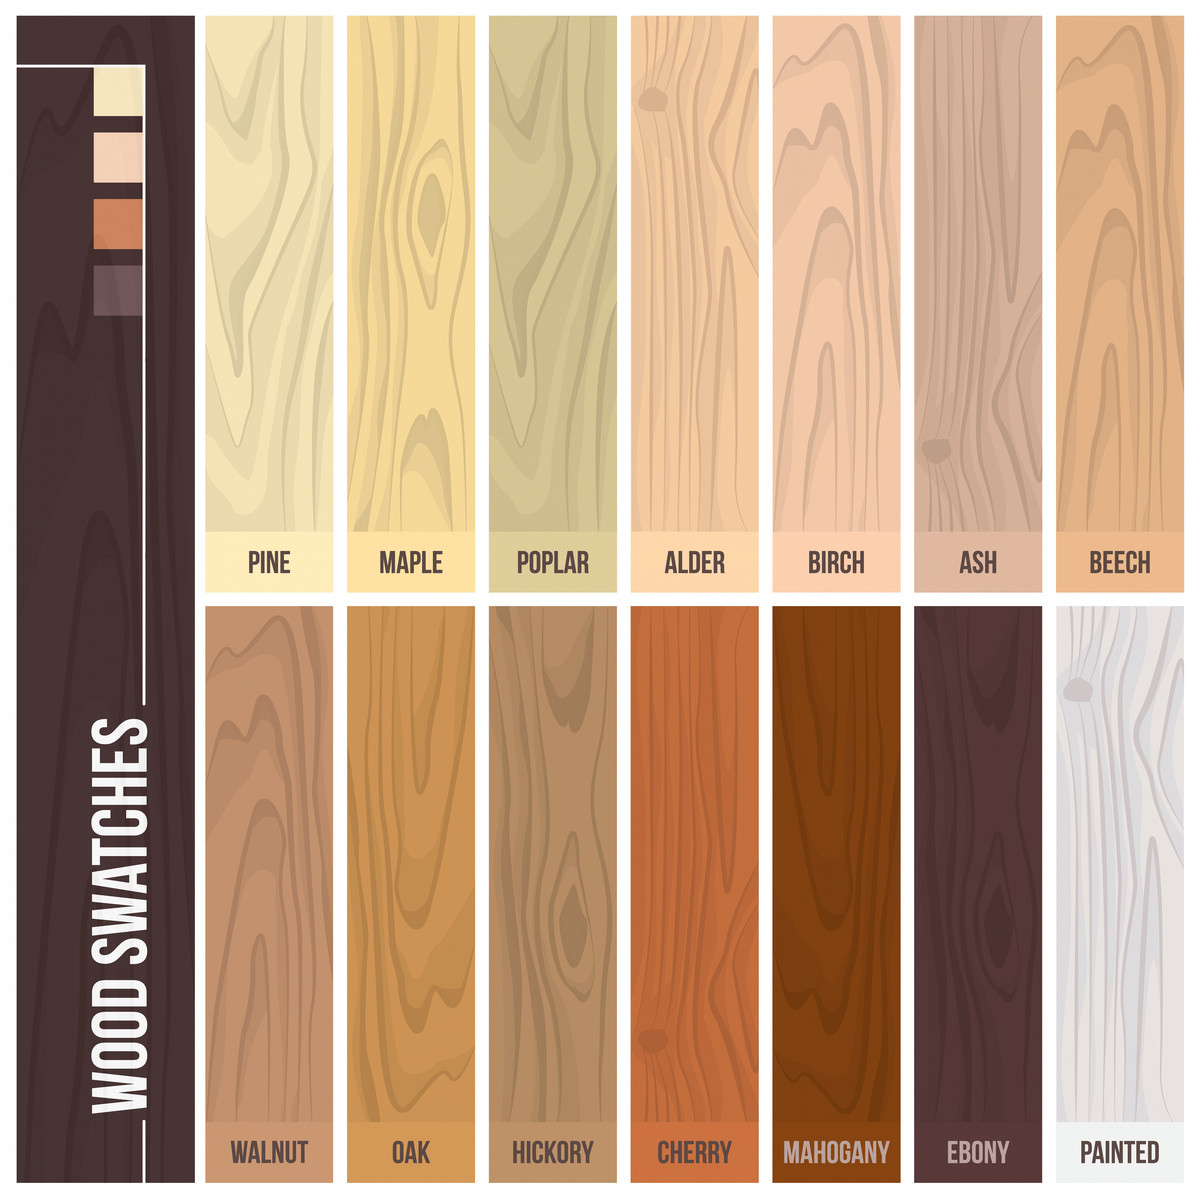 2 1 4 hardwood flooring unfinished of 12 types of hardwood flooring species styles edging dimensions intended for types of hardwood flooring illustrated guide